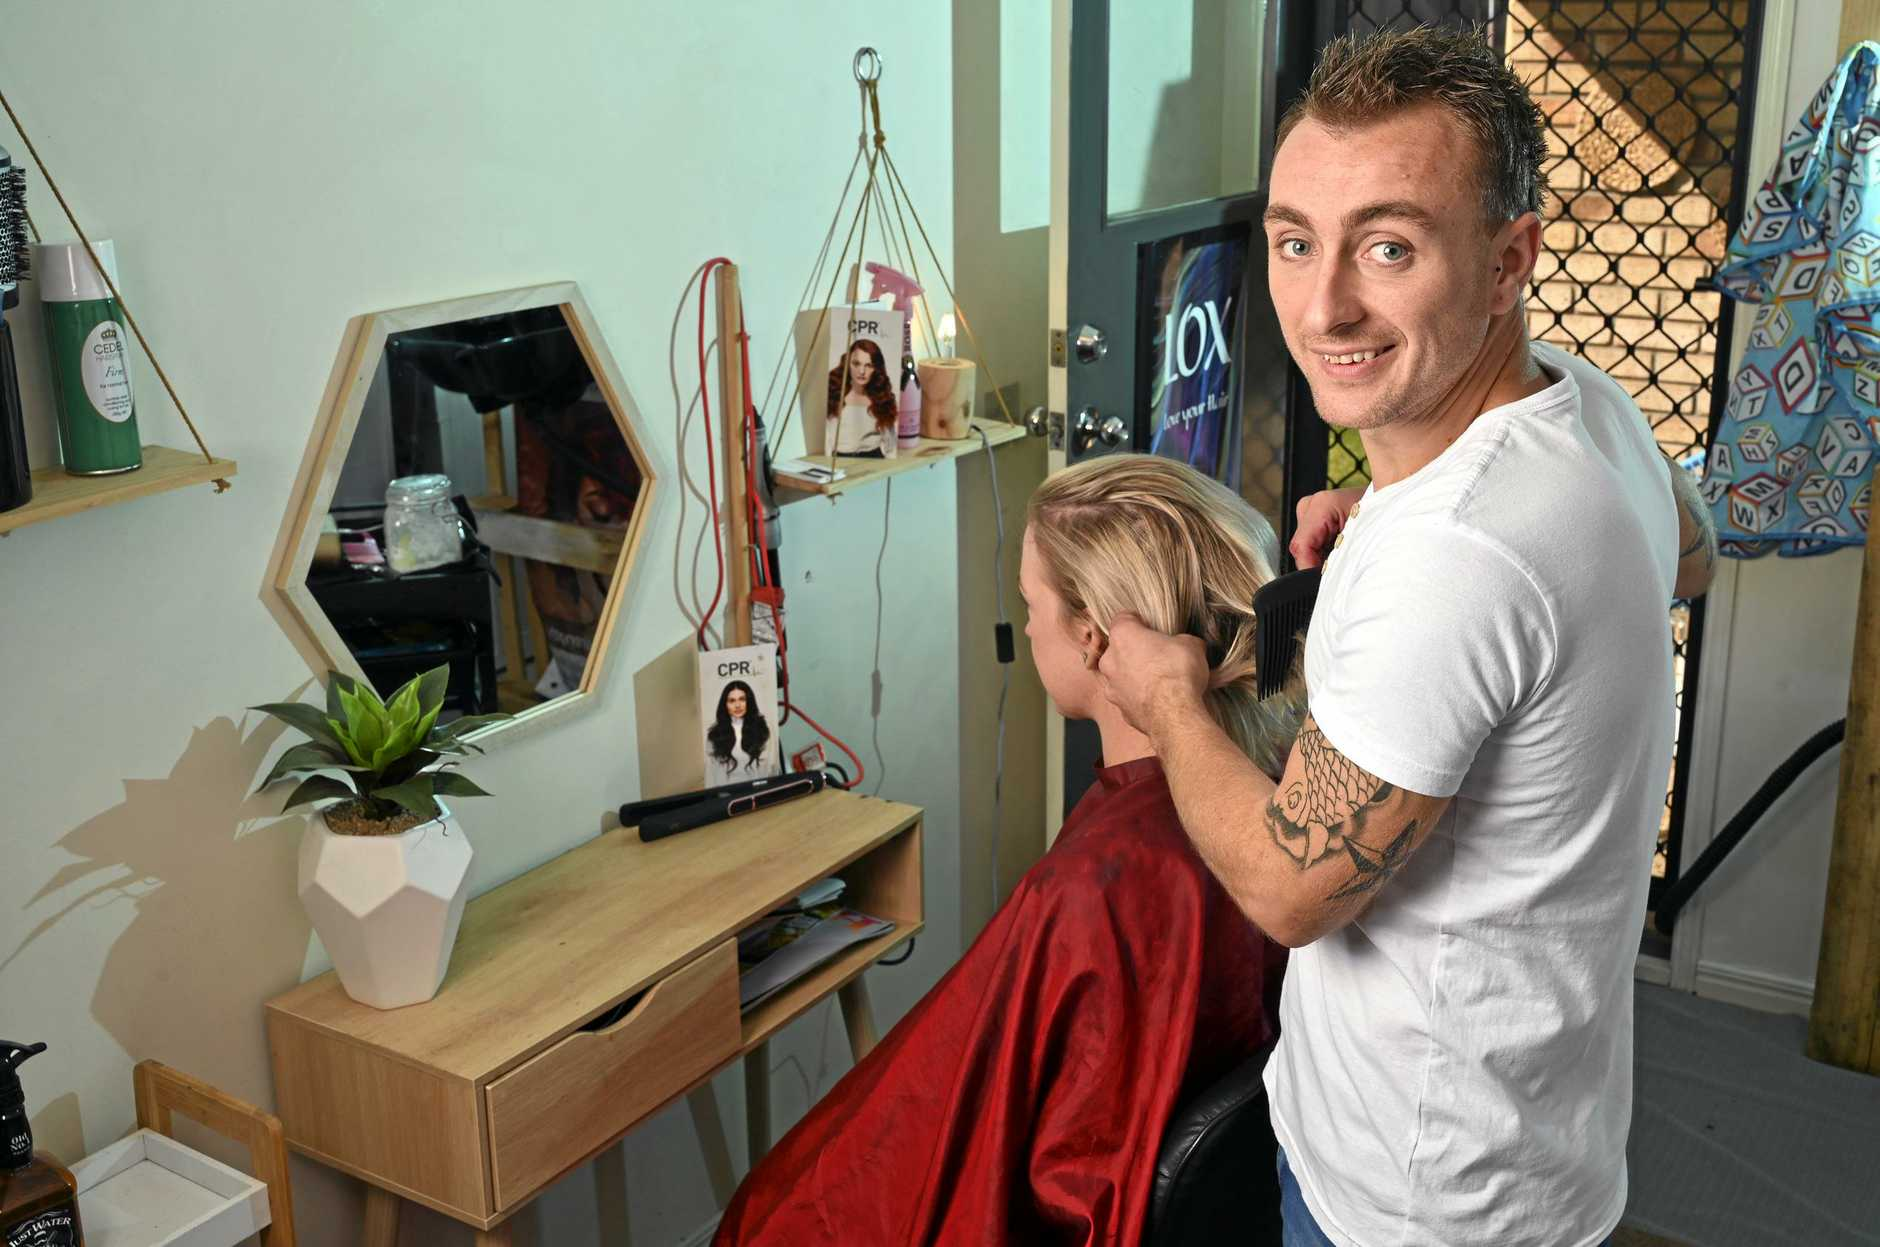 Benjamin Peters has been in the hairdressing biz for a decade now. He started off as a rockstar apprentice and he's continued to succeed by points of difference in marketing and customer service.